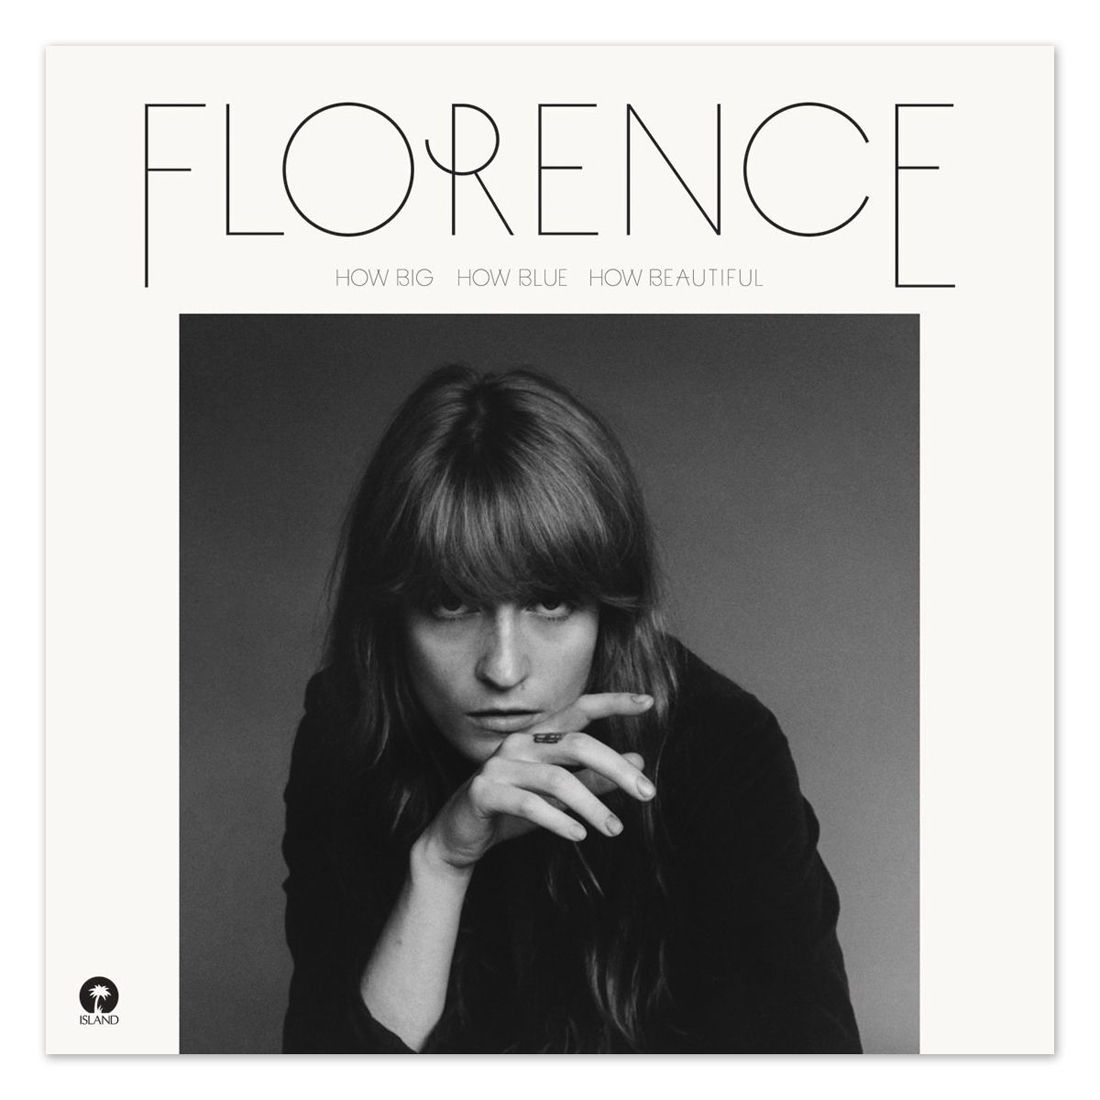 How Beautiful Florence Welch